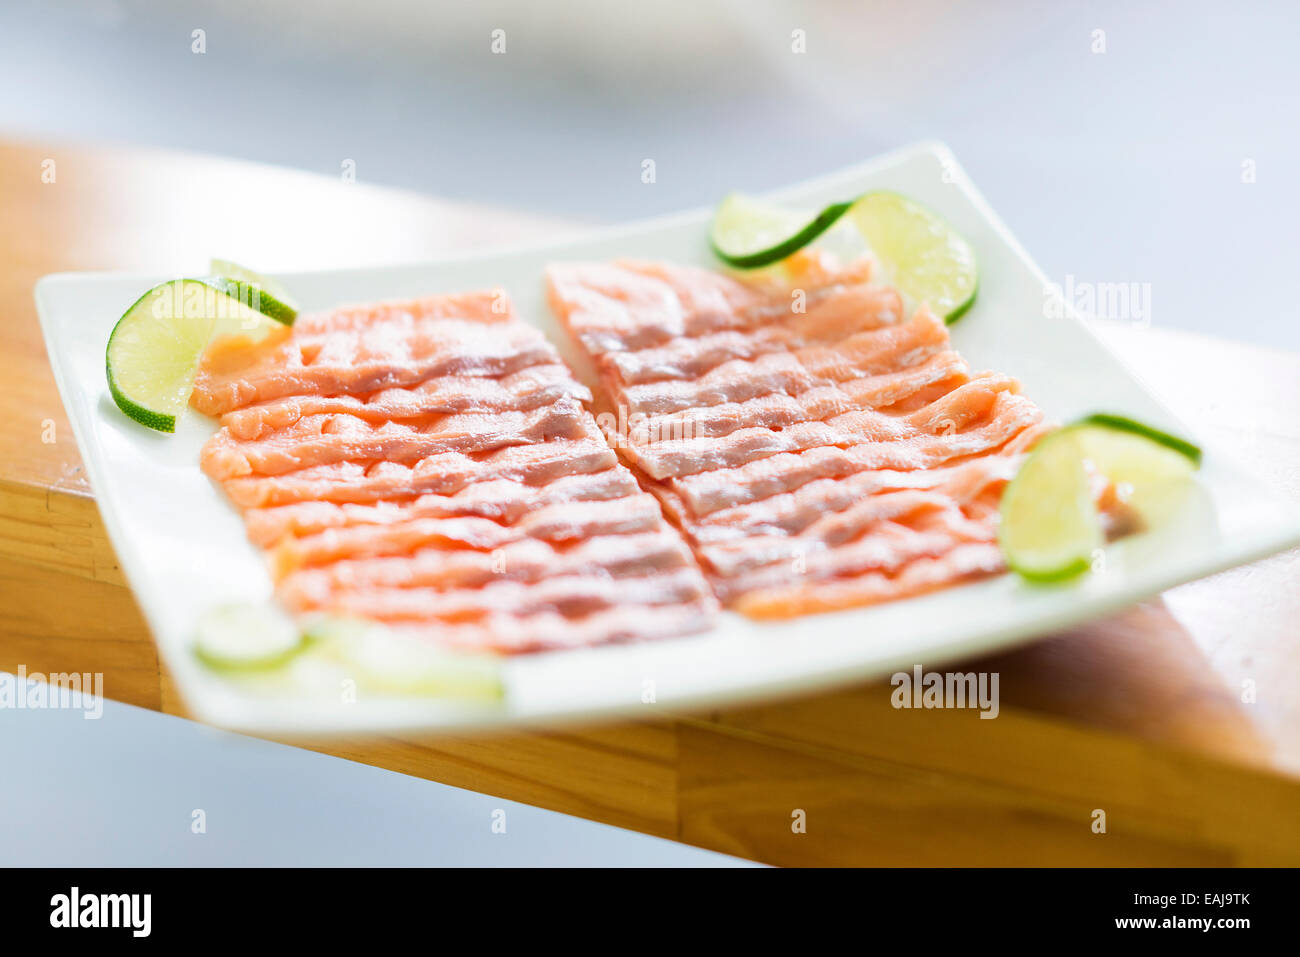 smoked salmon dish on plate with lime - Stock Image